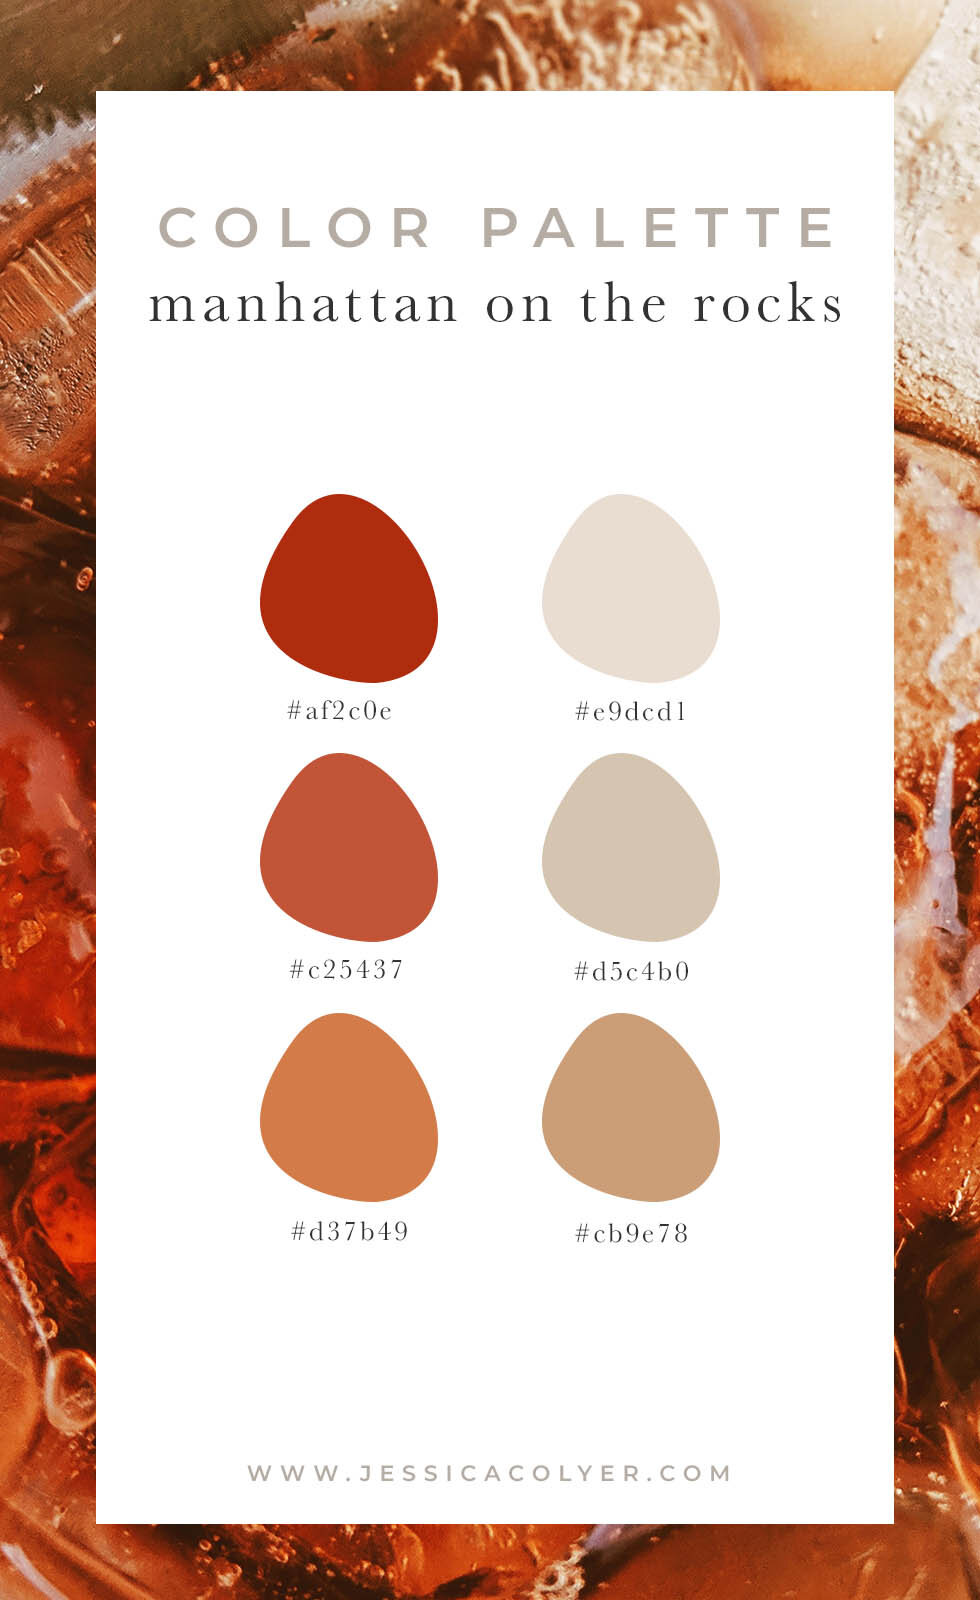 Manhattan On the Rocks Color Palette | Jessica Colyer